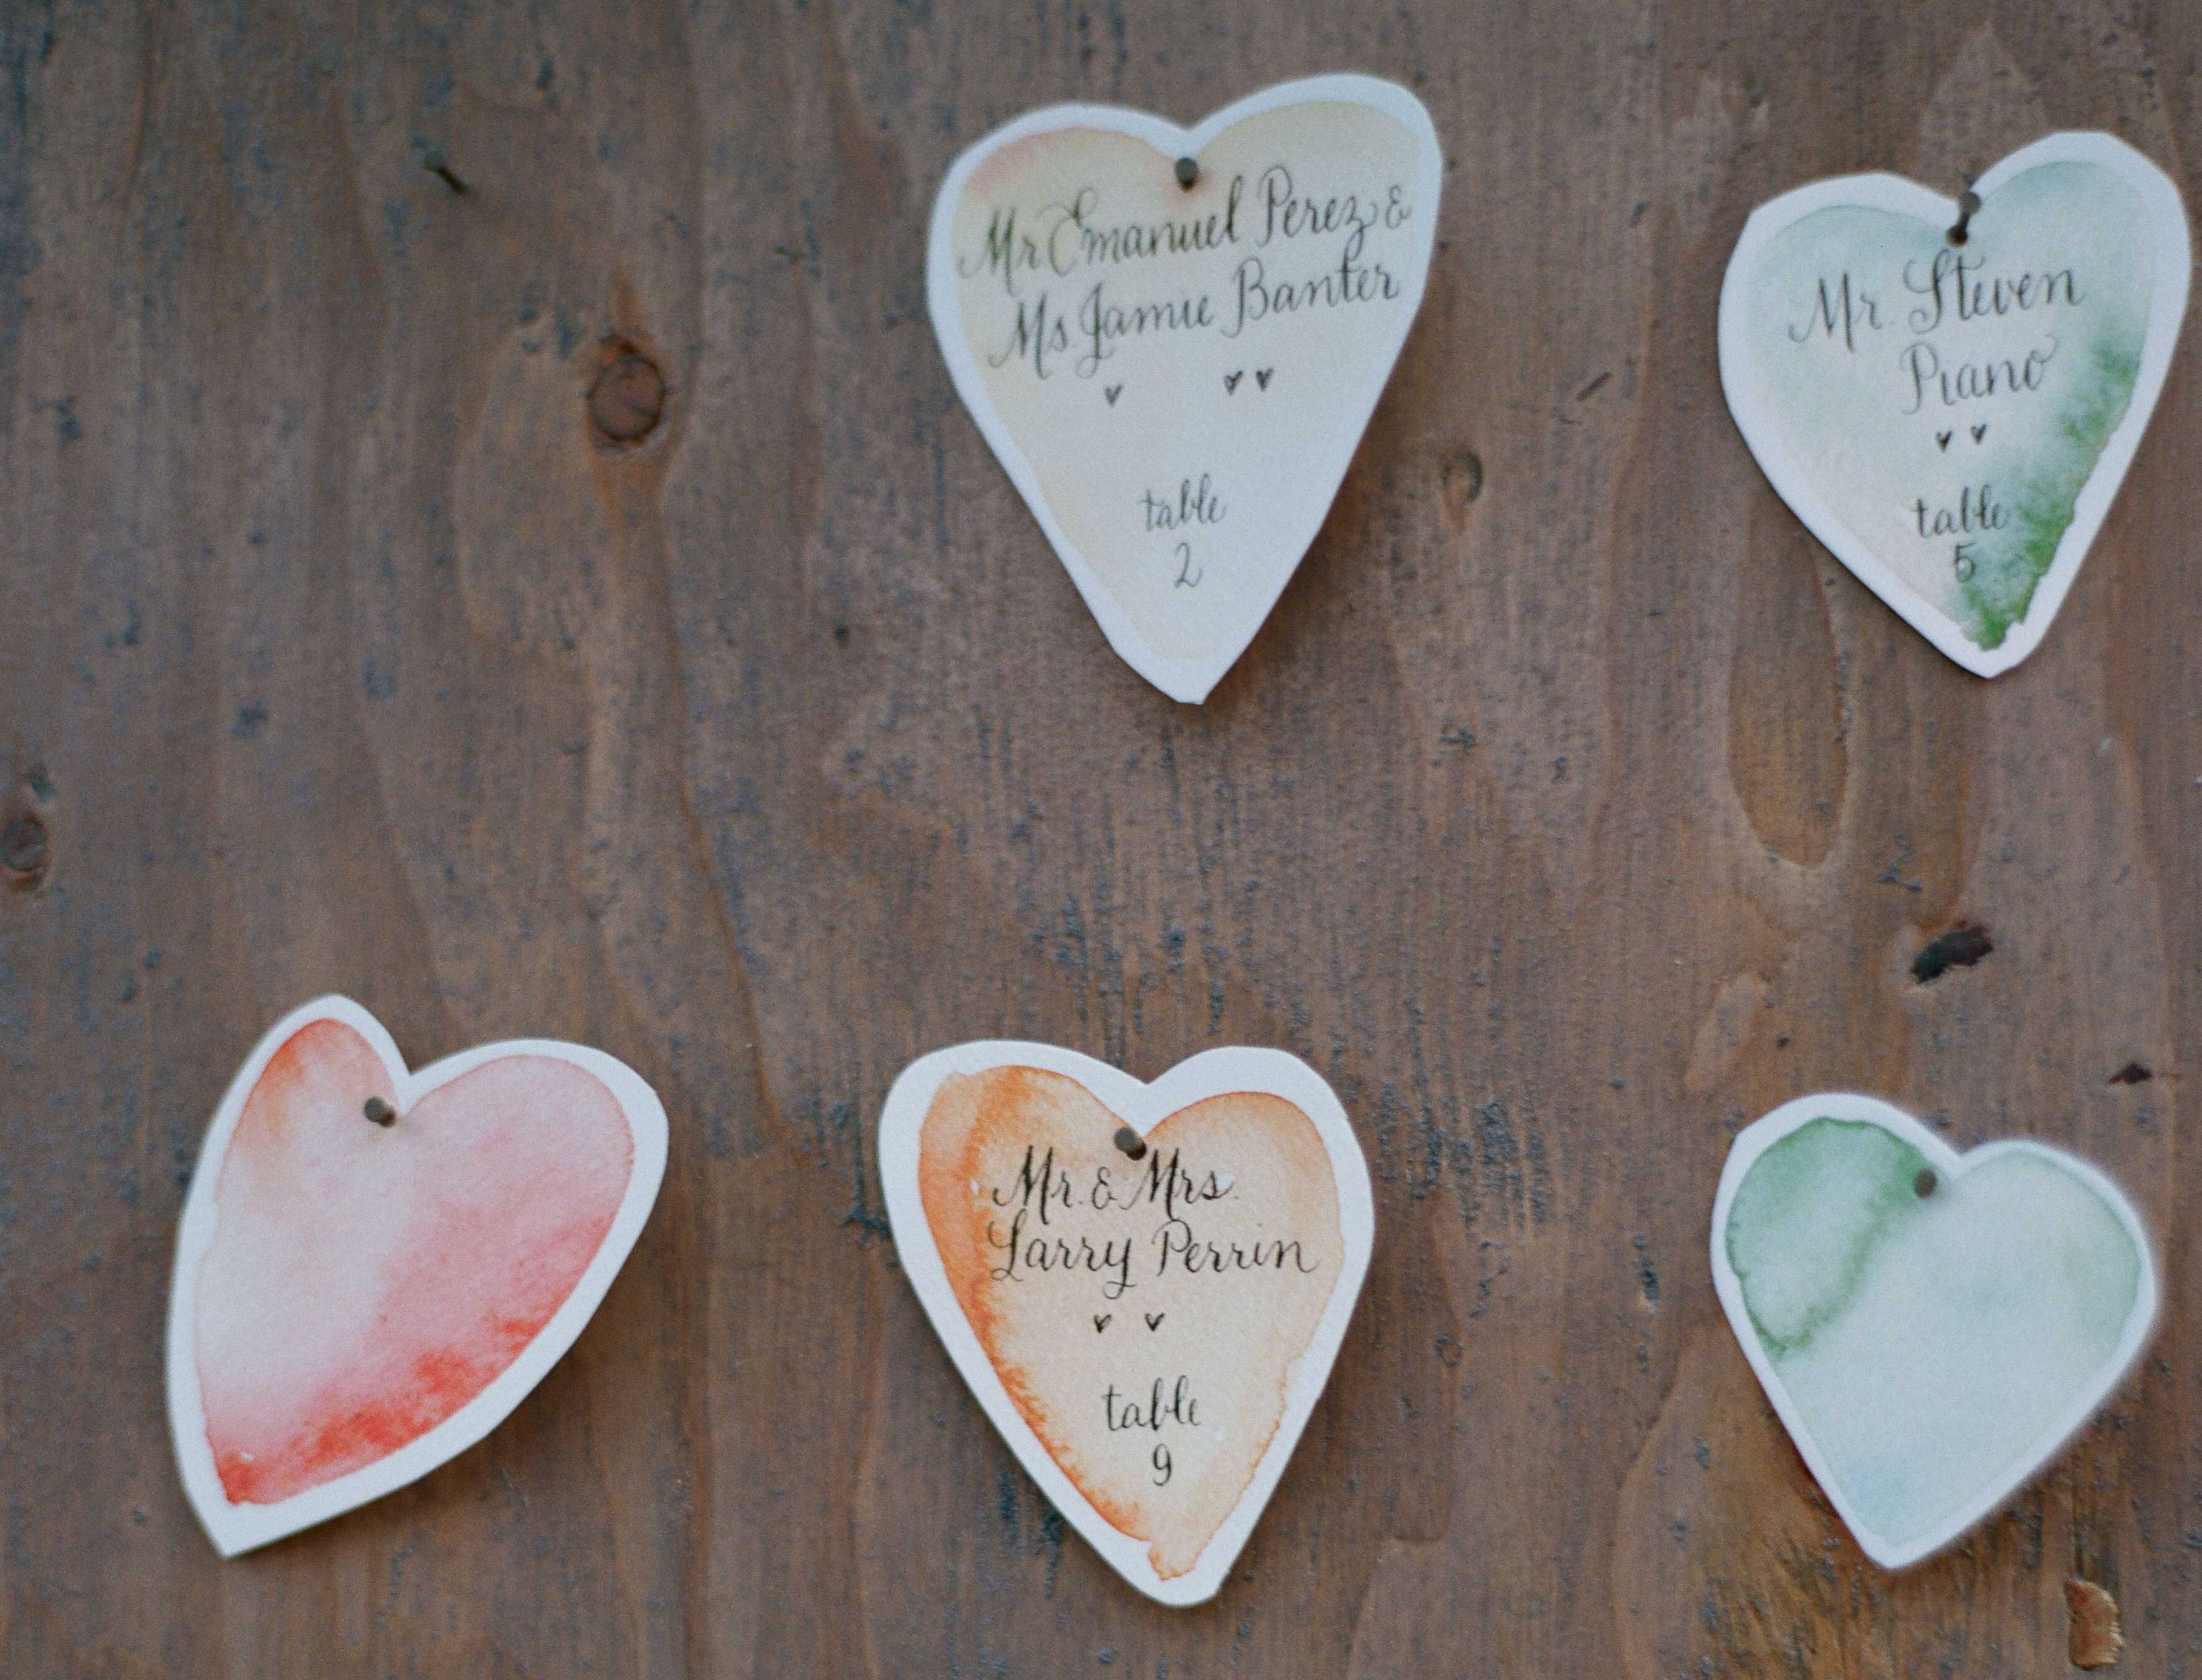 Watercolor heart shape escort cards with calligraphy on wood